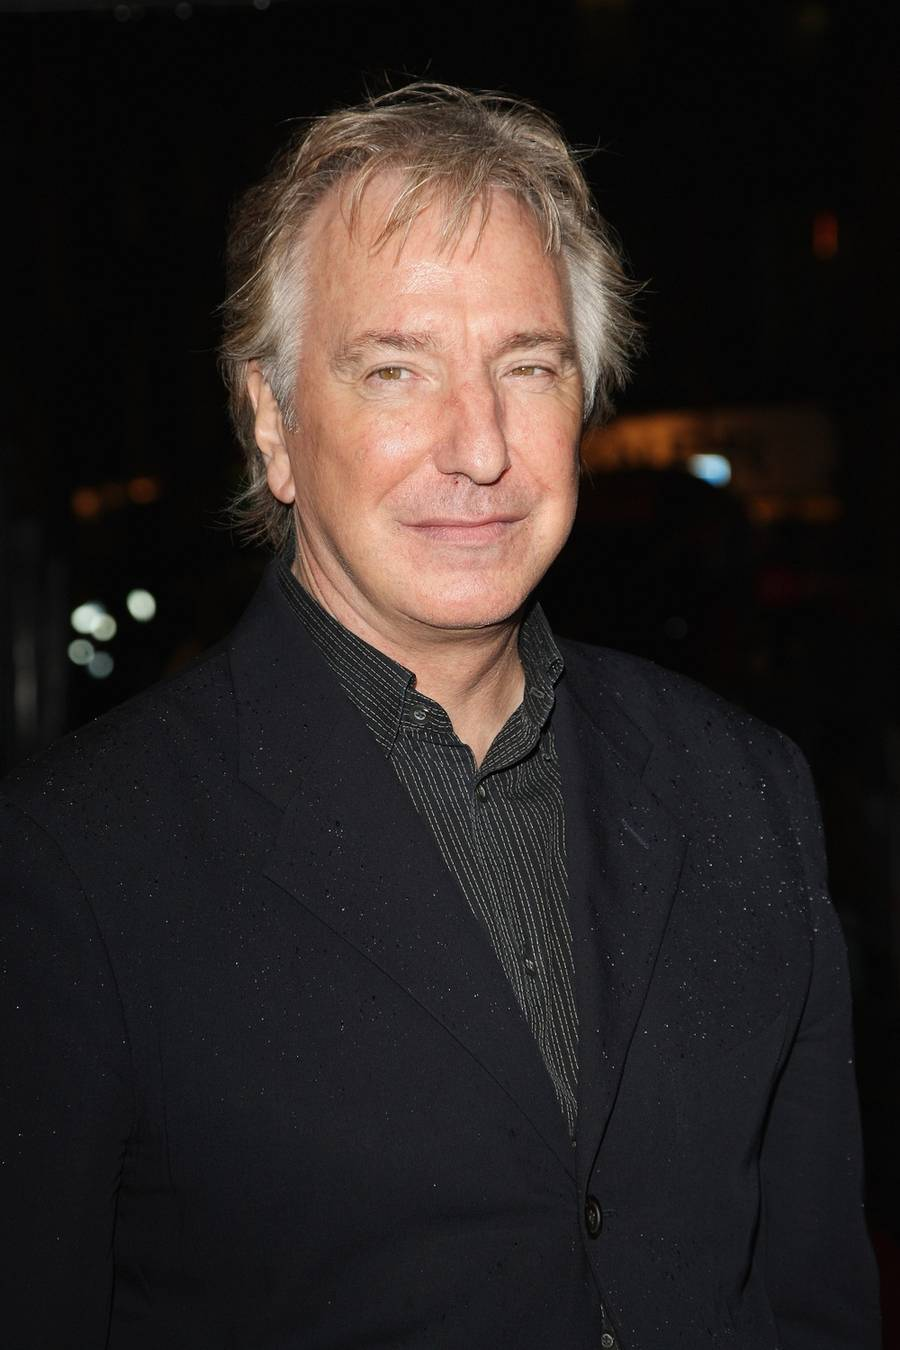 Alan Rickman blev kun 69 år. Foto: Getty Images